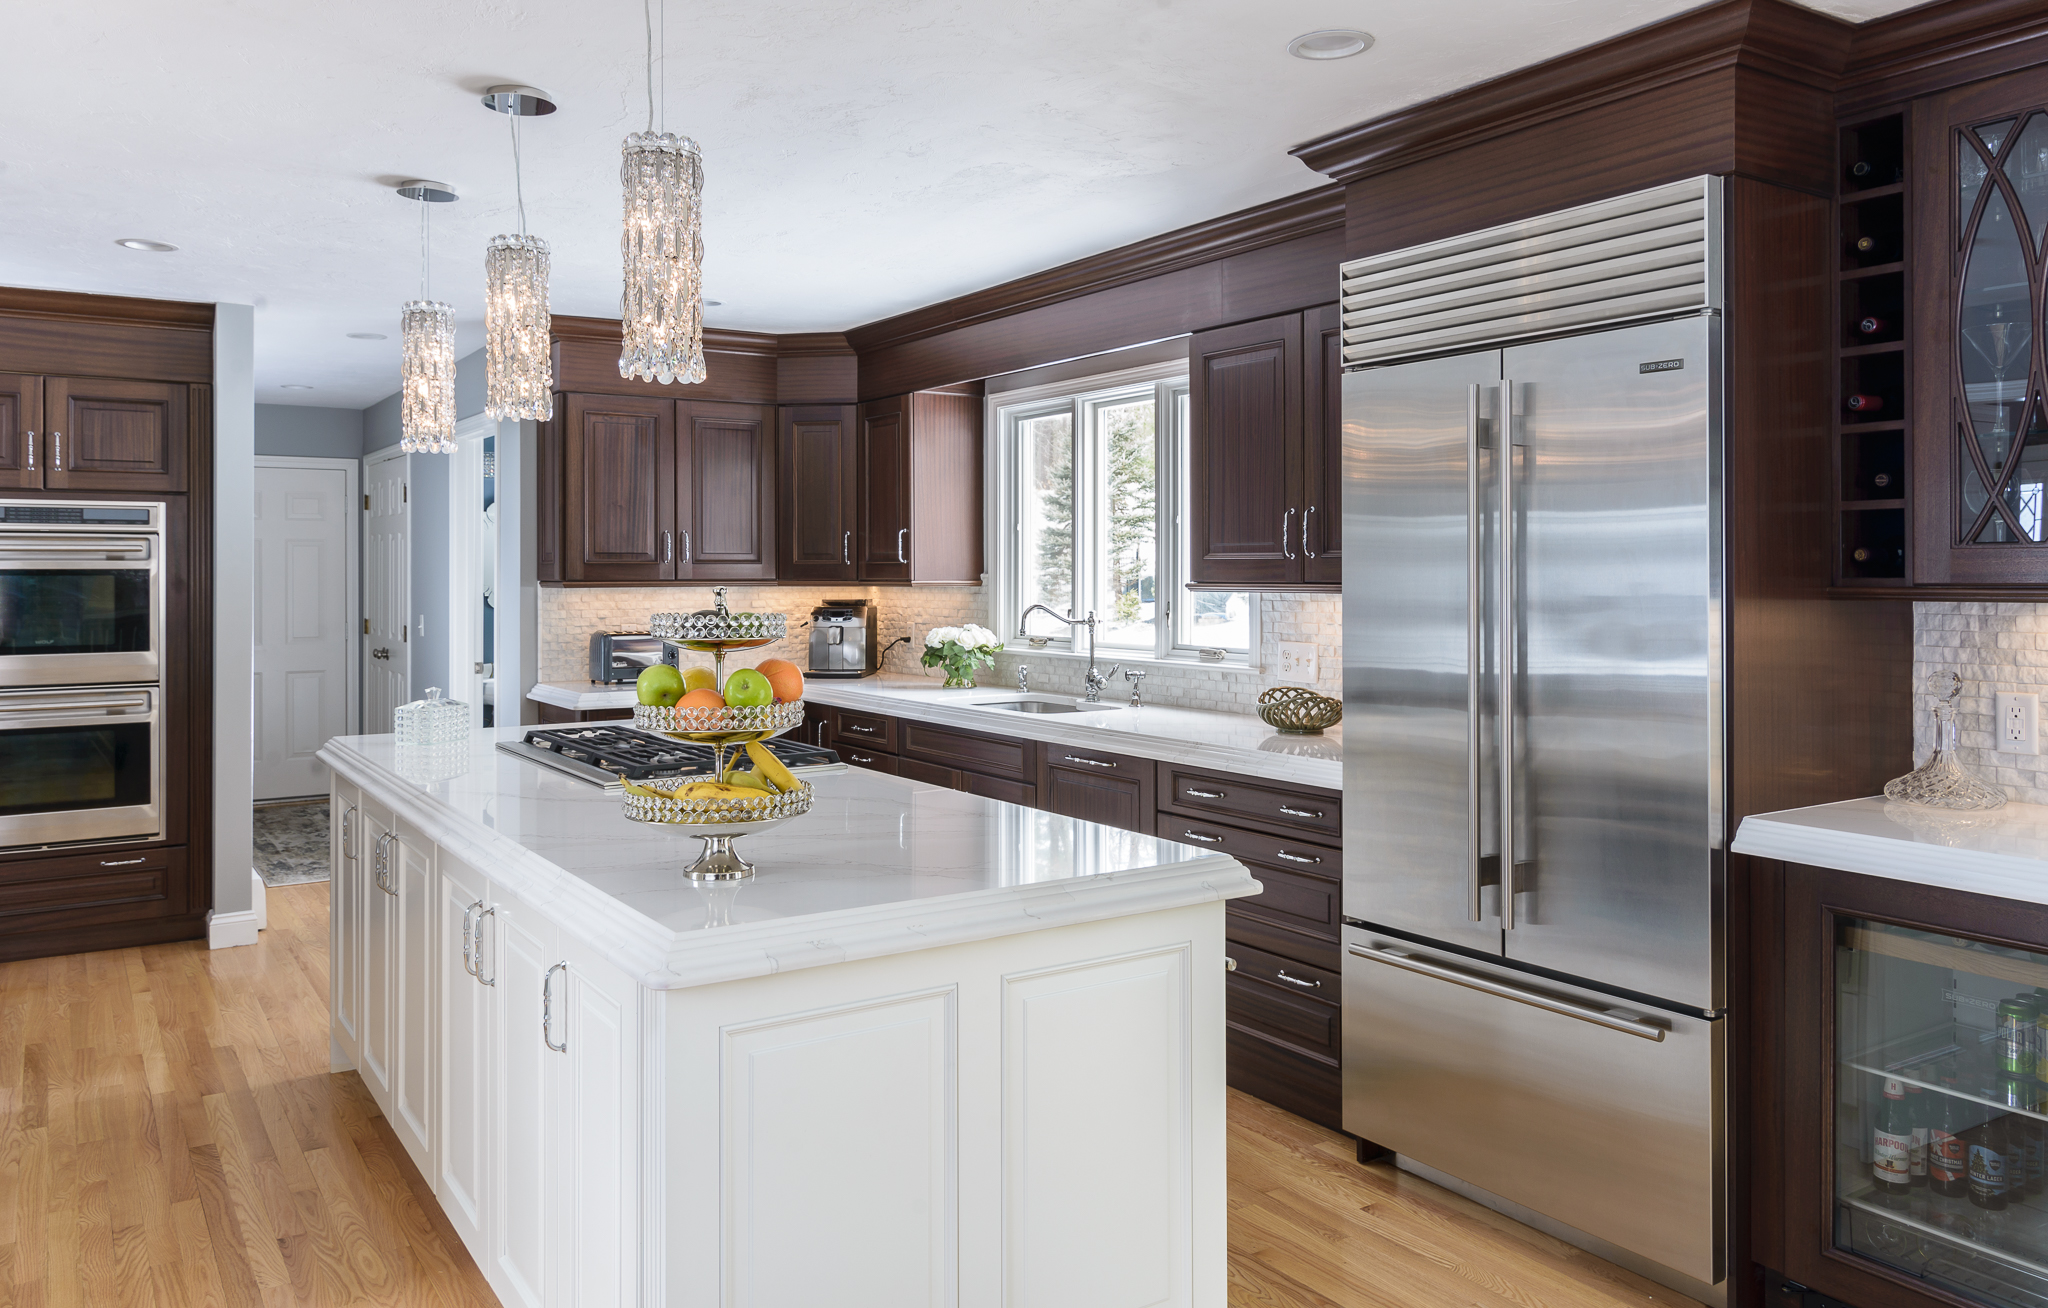 Luxurious Kitchen Remodel In Lancaster, MA